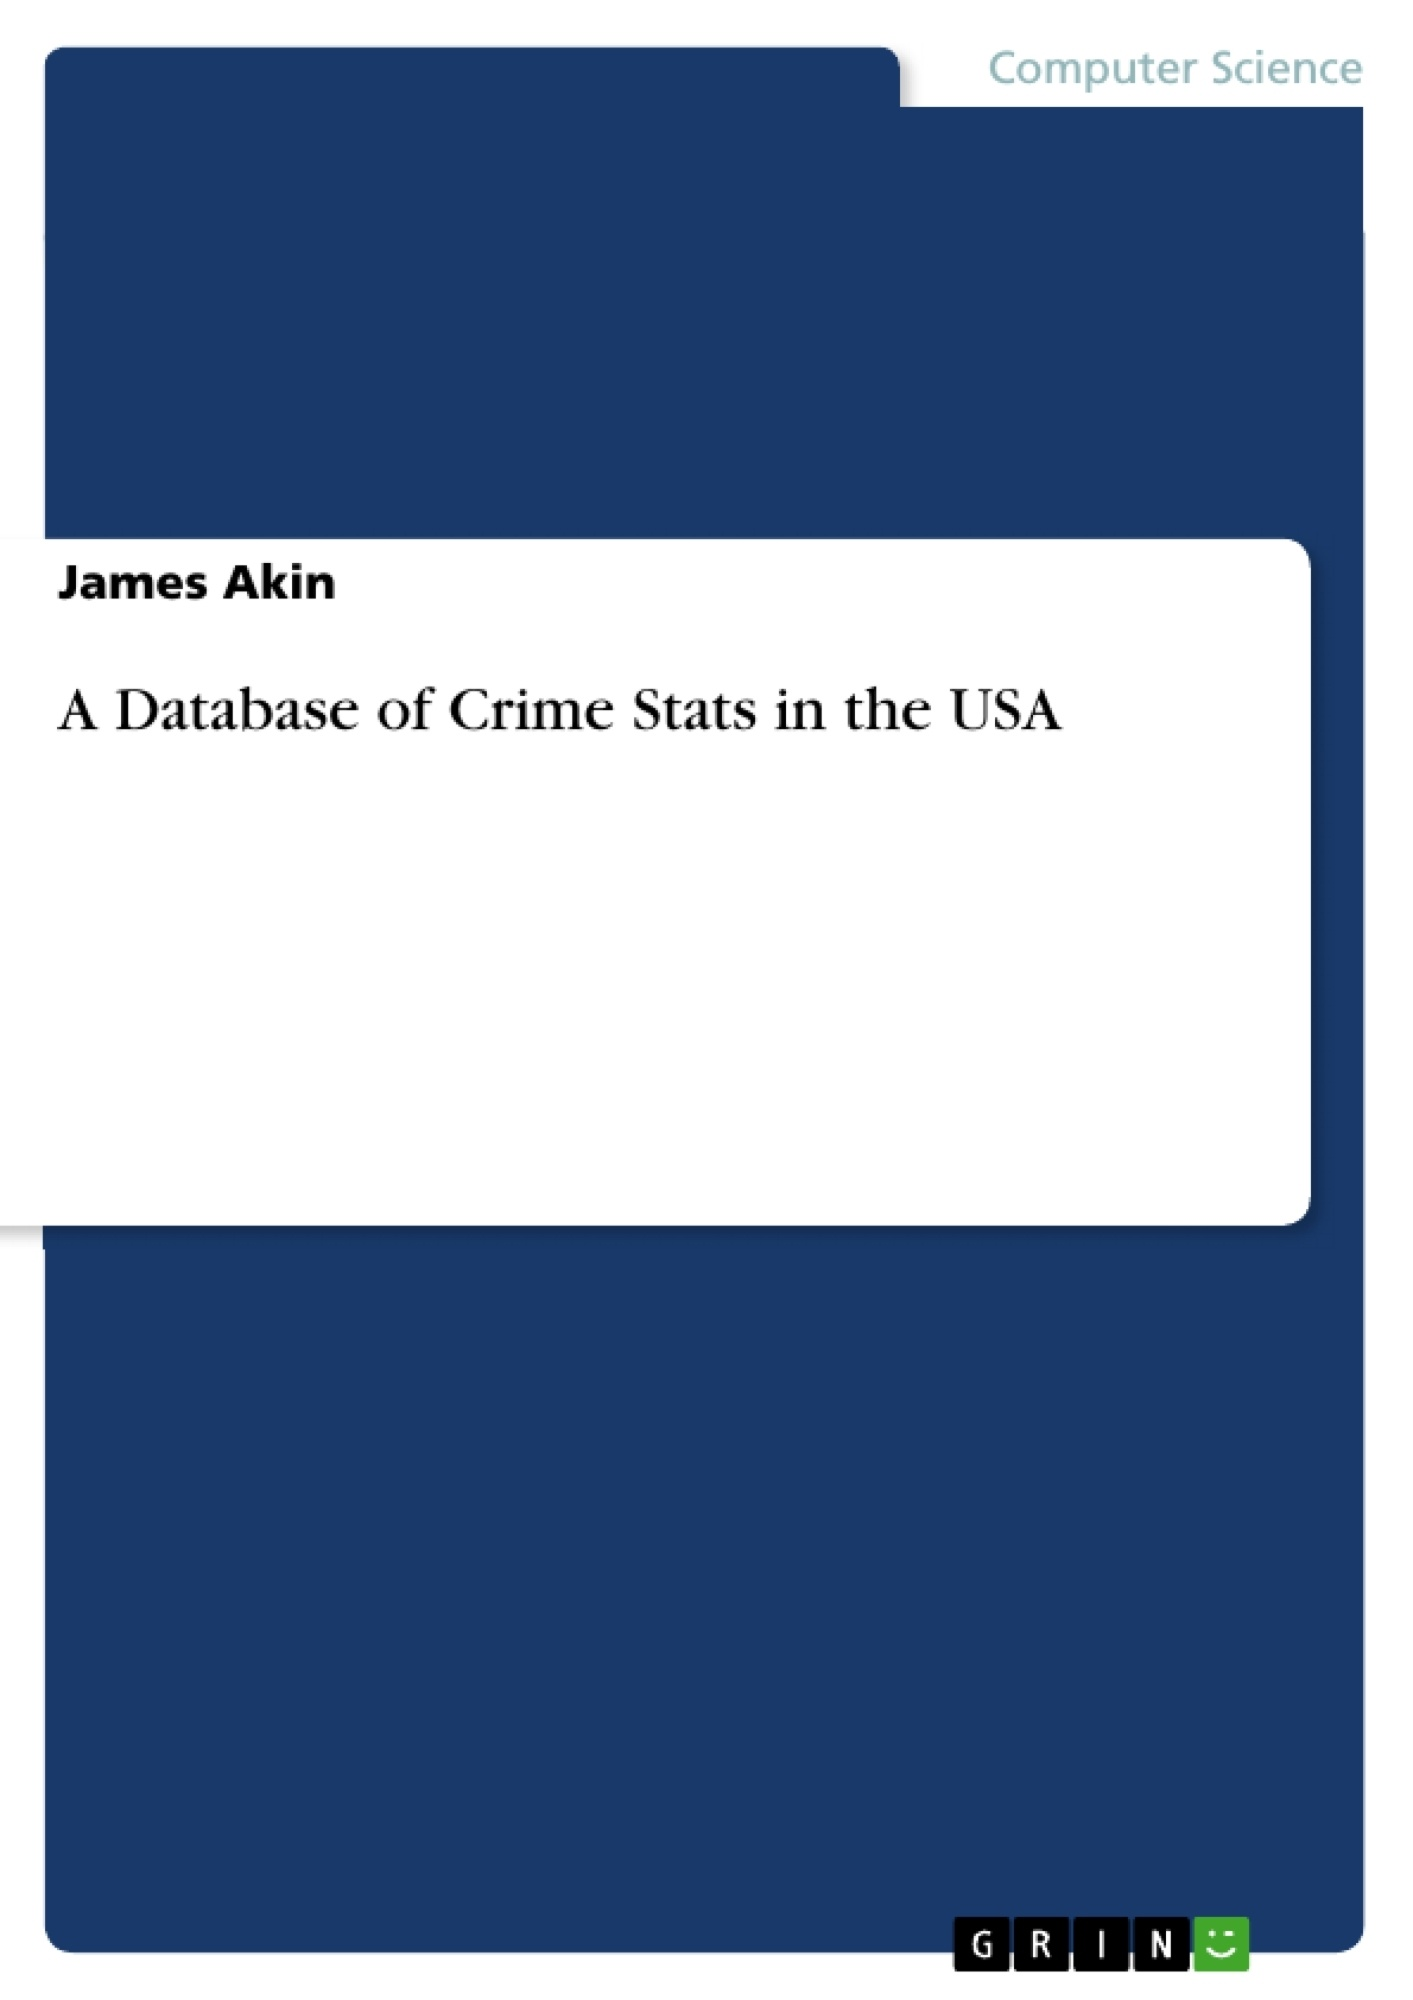 GRIN - A Database of Crime Stats in the USA